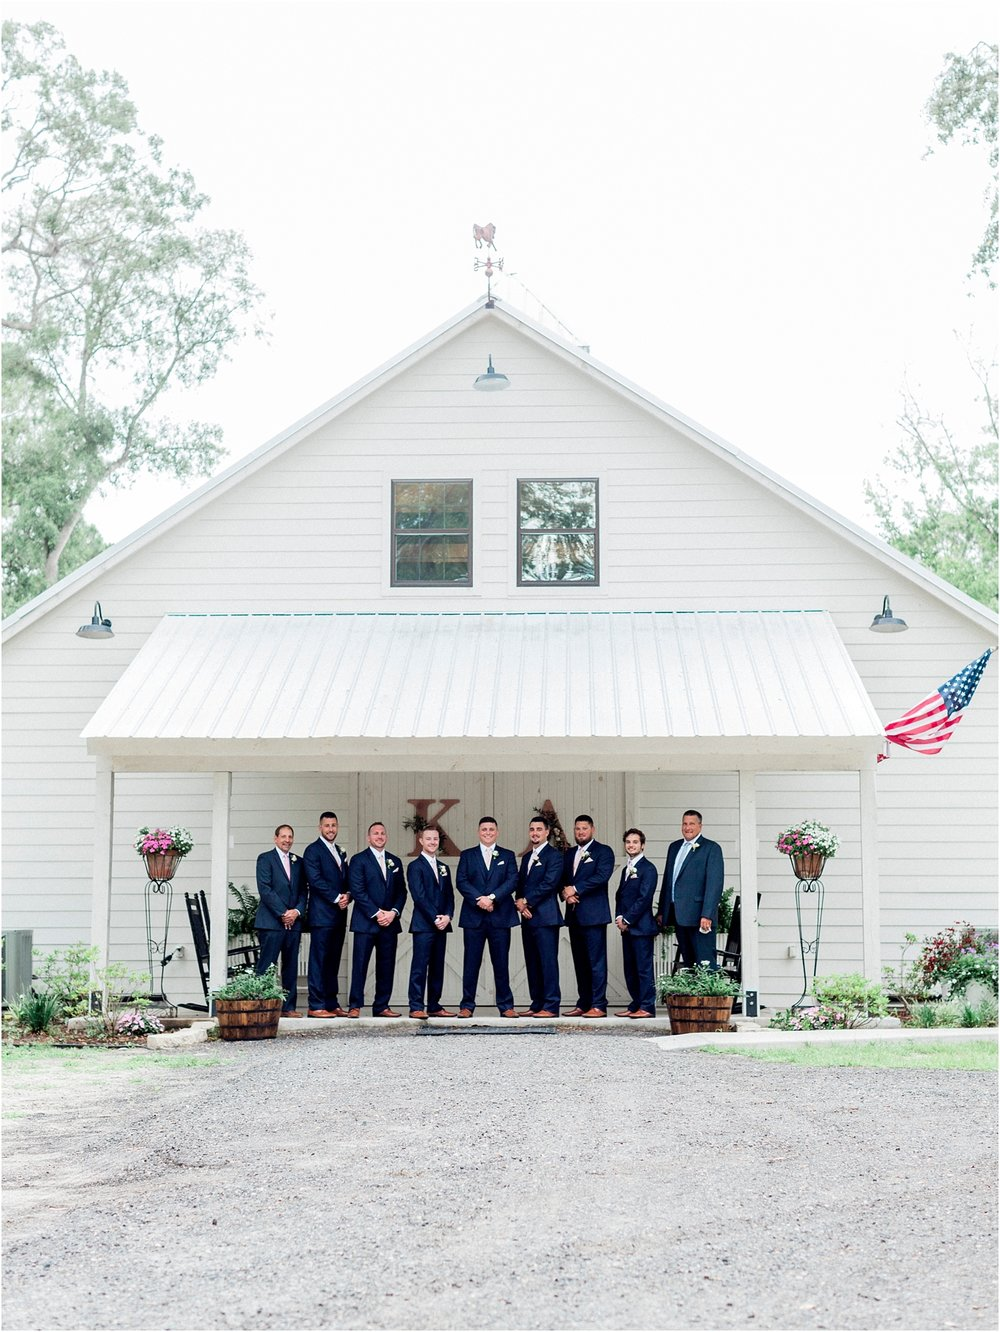 Lisa Silva Photography- Ponte Vedra Beach, St. Augustine and Jacksonville, Florida Fine Art Film Wedding and Boudoir Photography- Elegant Blush and Navy Wedding at Chandler Oaks Barn in St. Augustine, Florida_0043.jpg